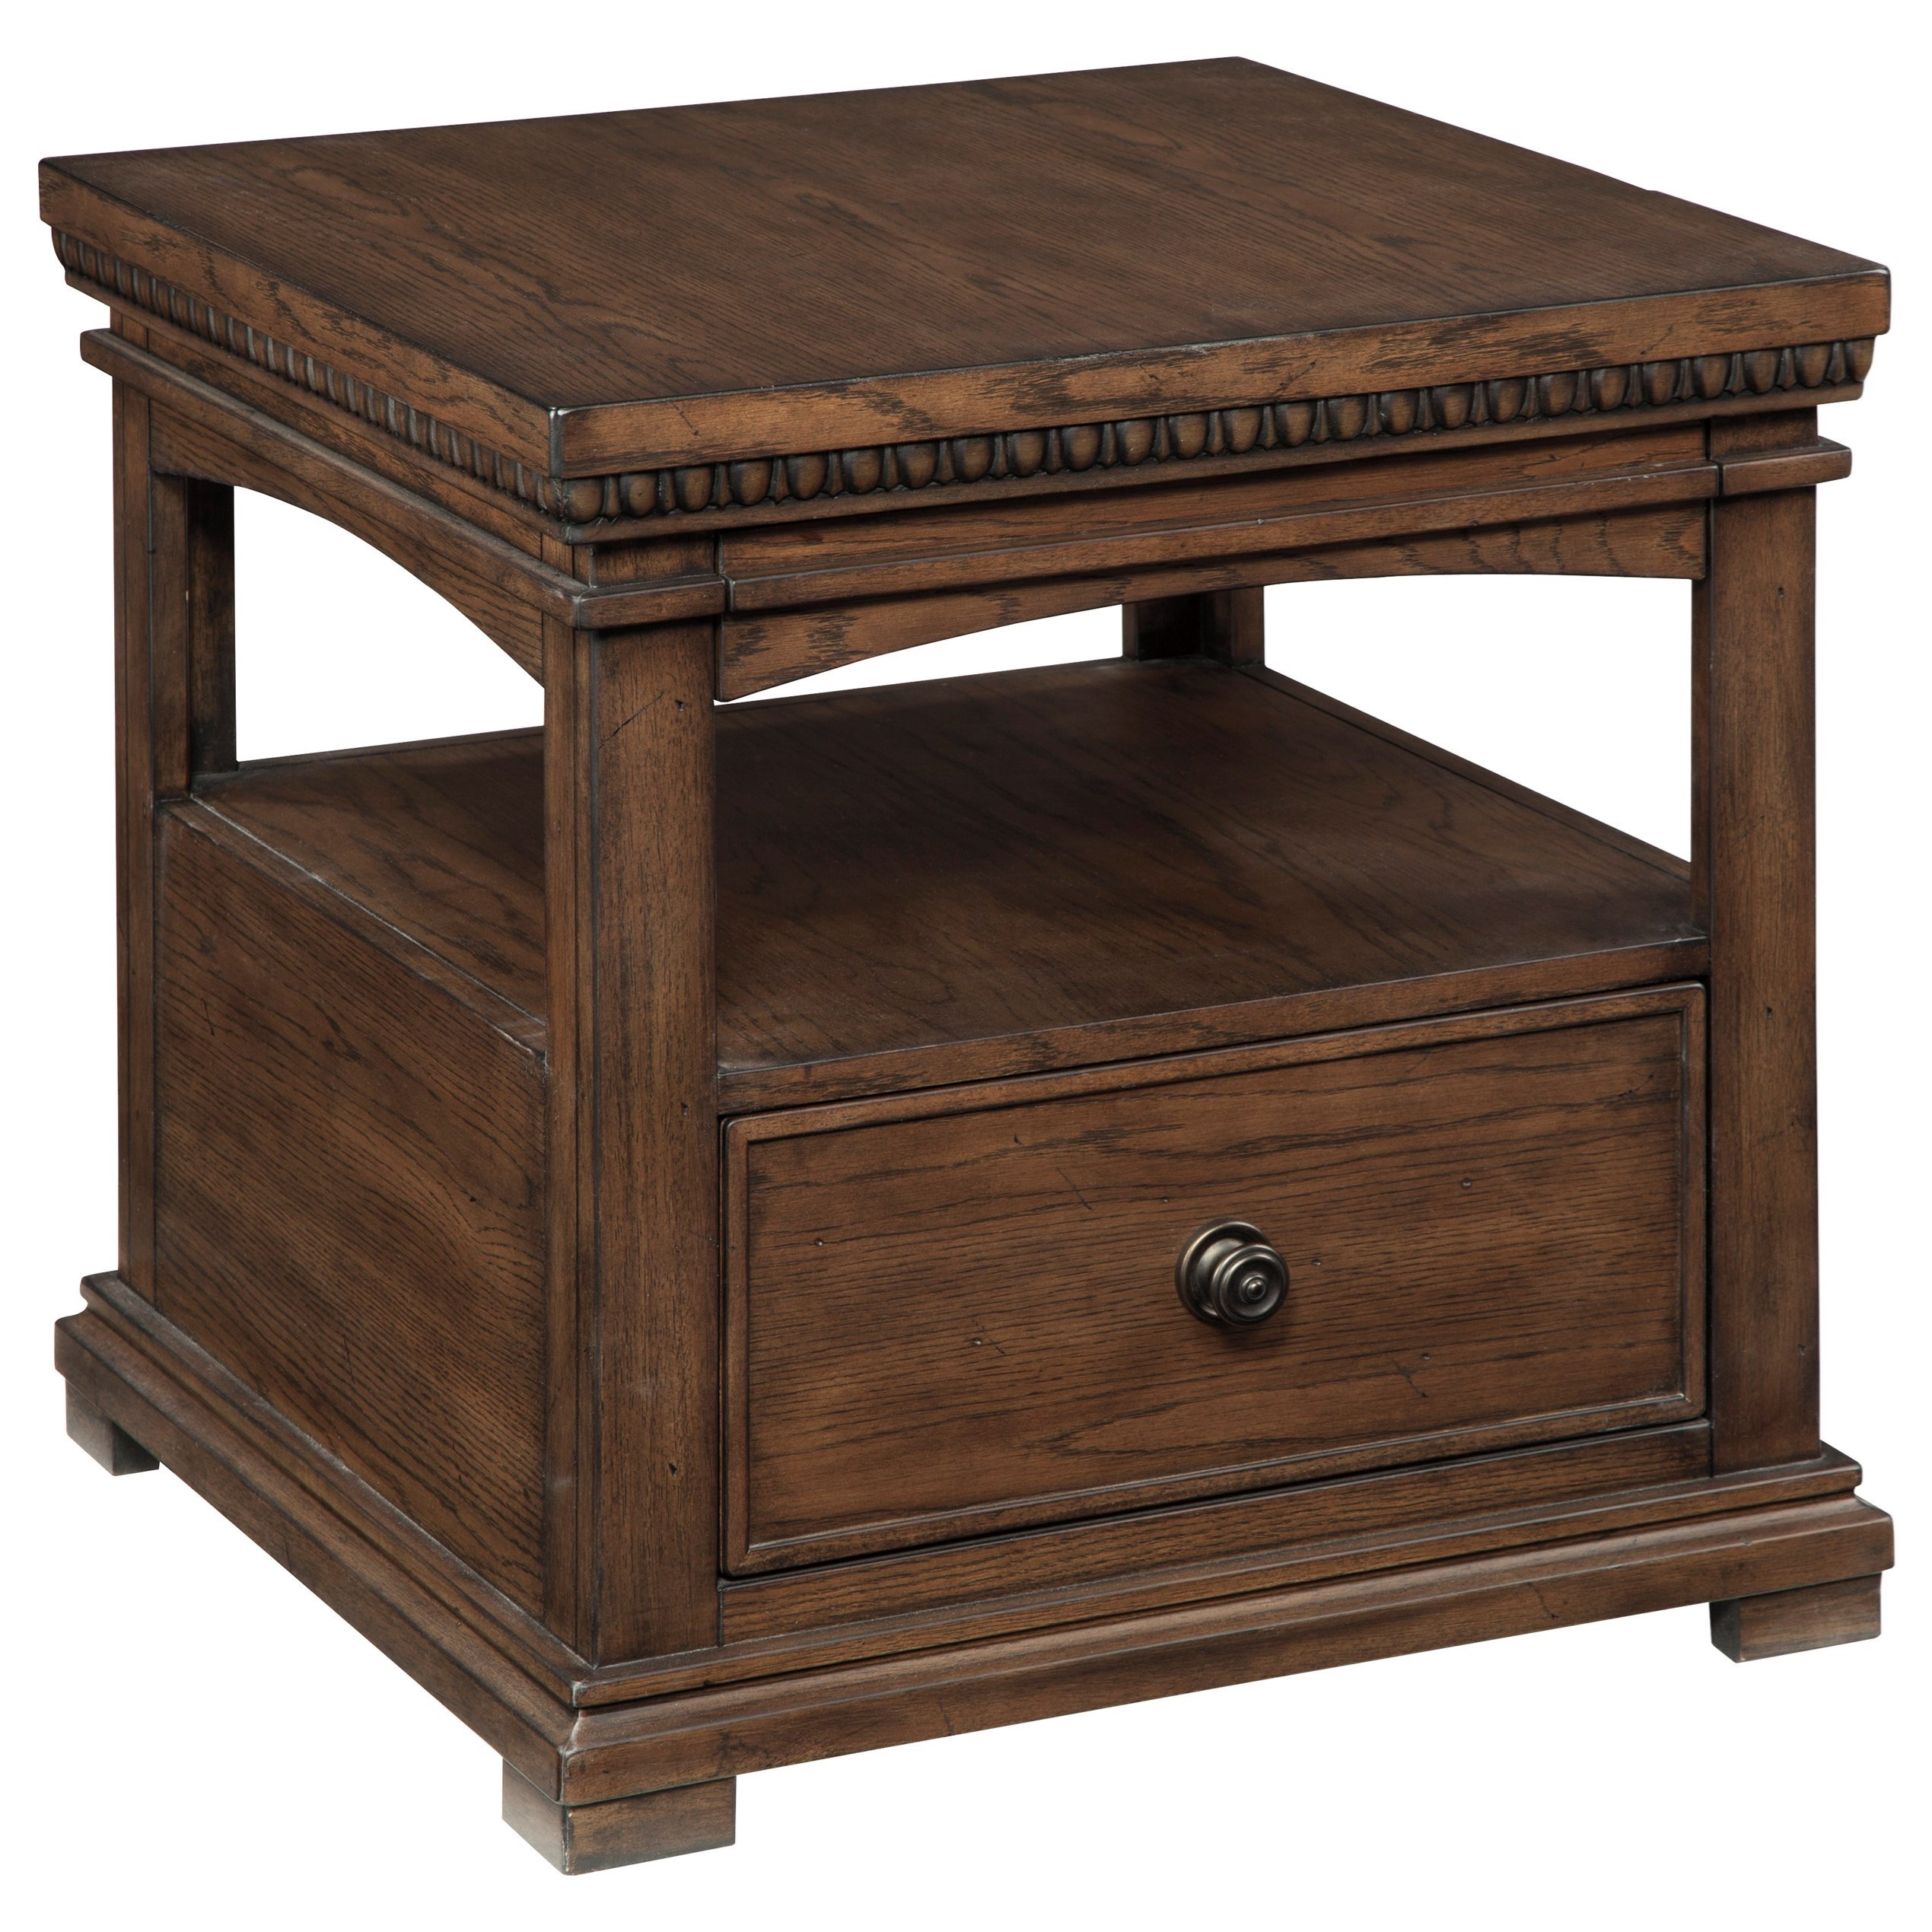 Signature Design by Ashley Larrenton Rectangular End Table - Item Number: T790-3